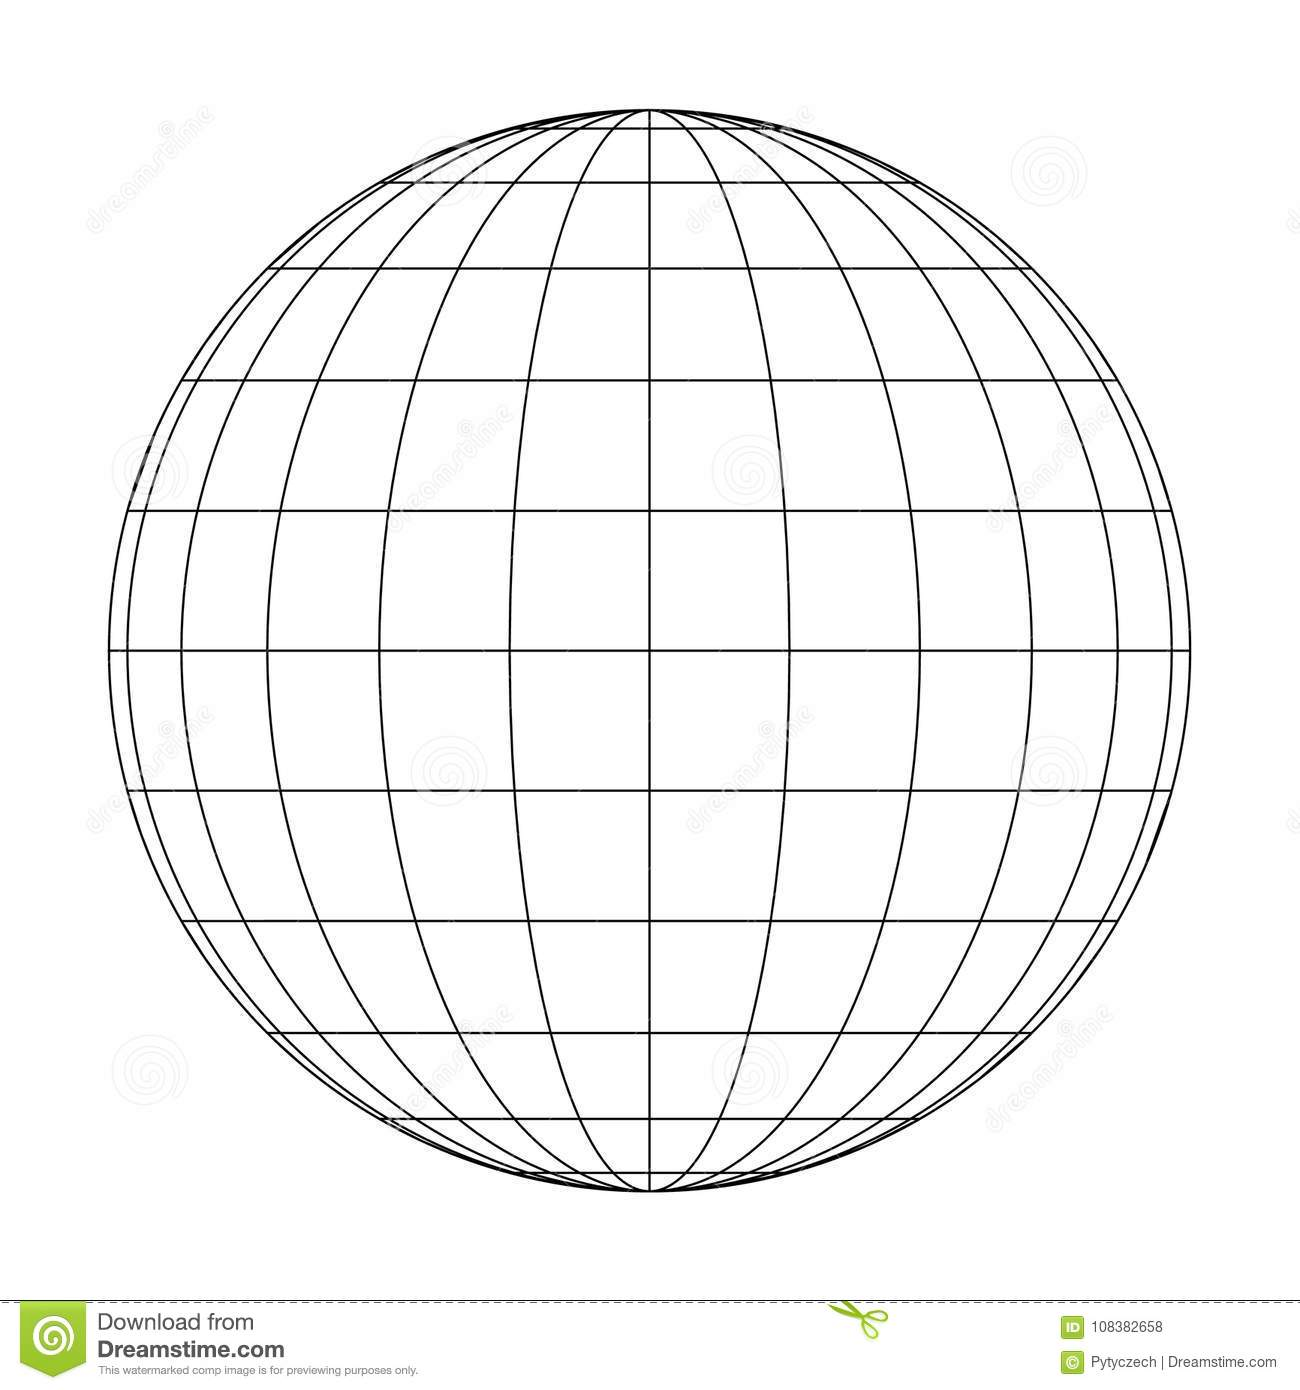 Front View Of Planet Earth Globe Grid Of Meridians And